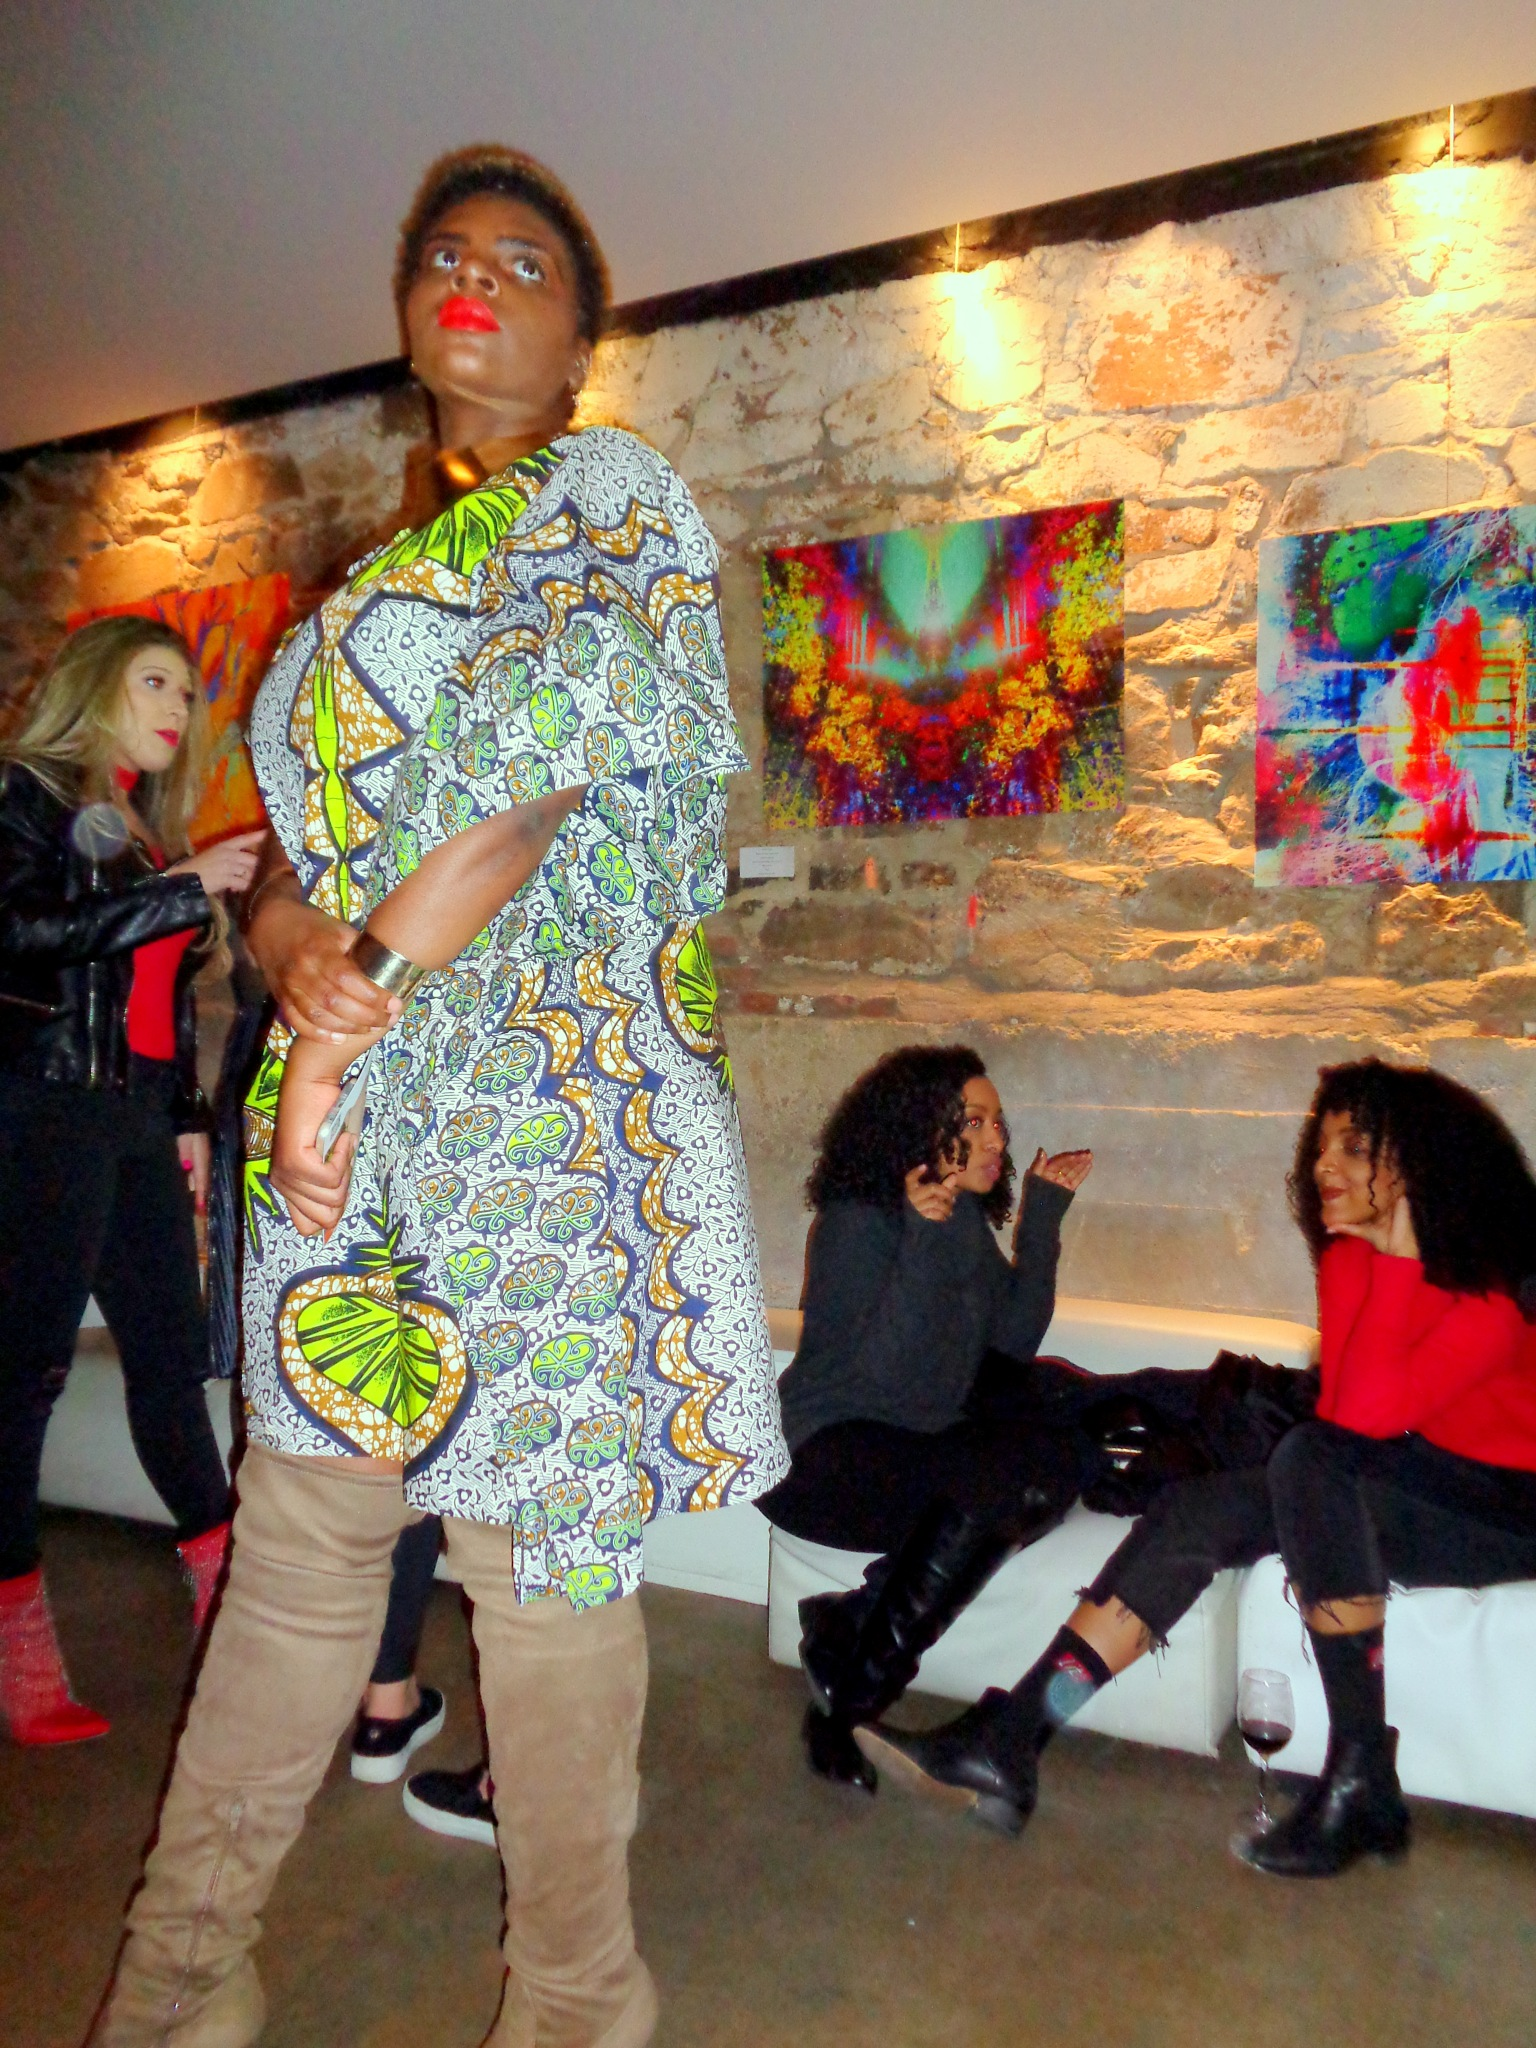 At the International Women's day - Women In the Arts: Pop-up Gallery  by NatalyaParris